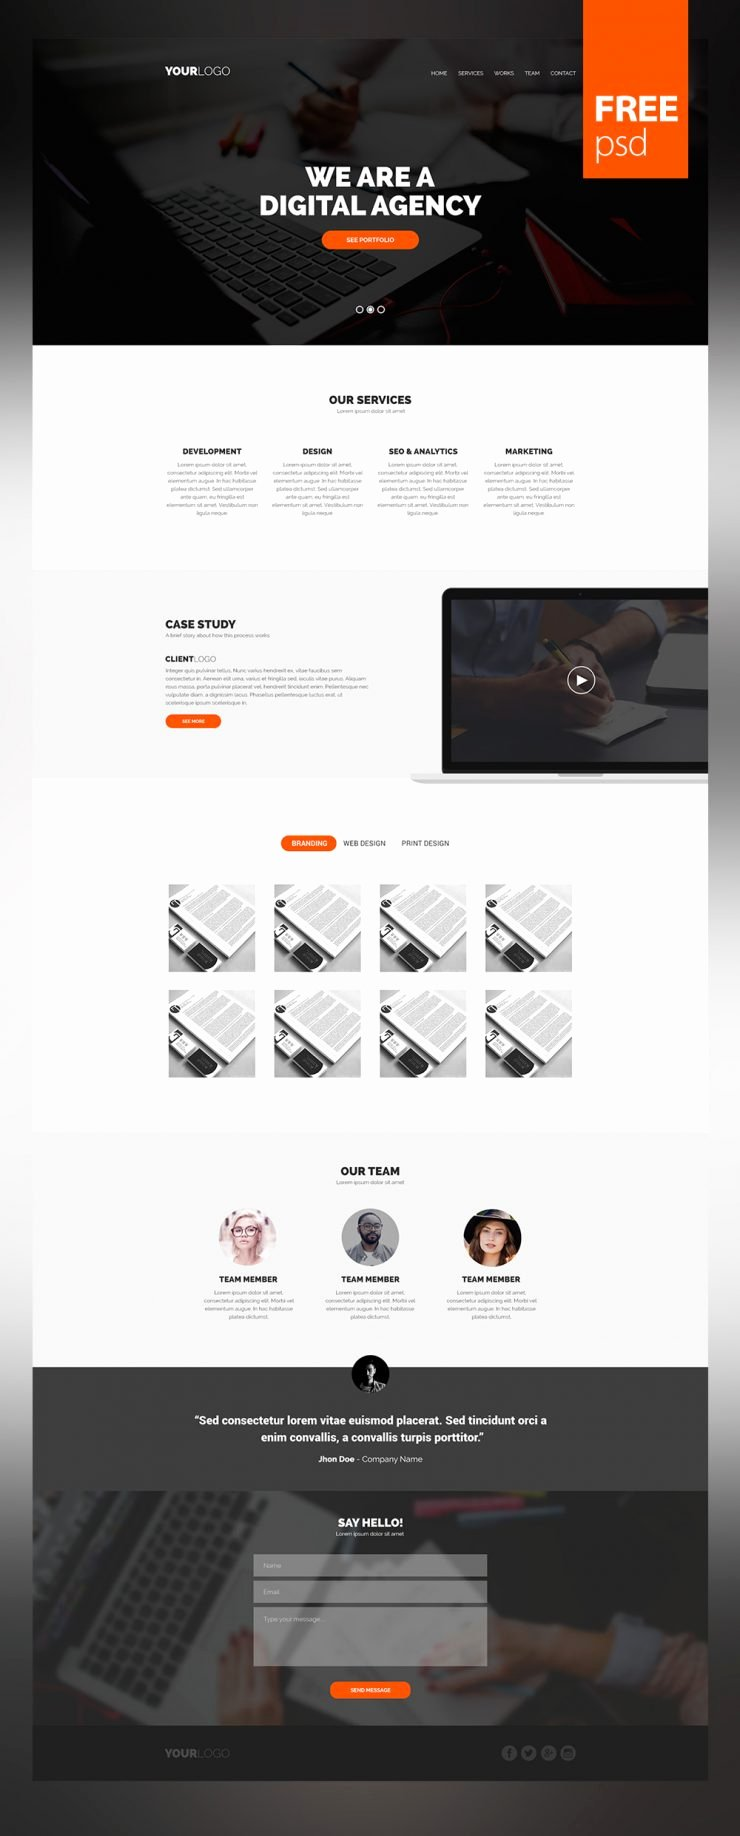 Simple and Clean Website Template Psd for Creative Digital